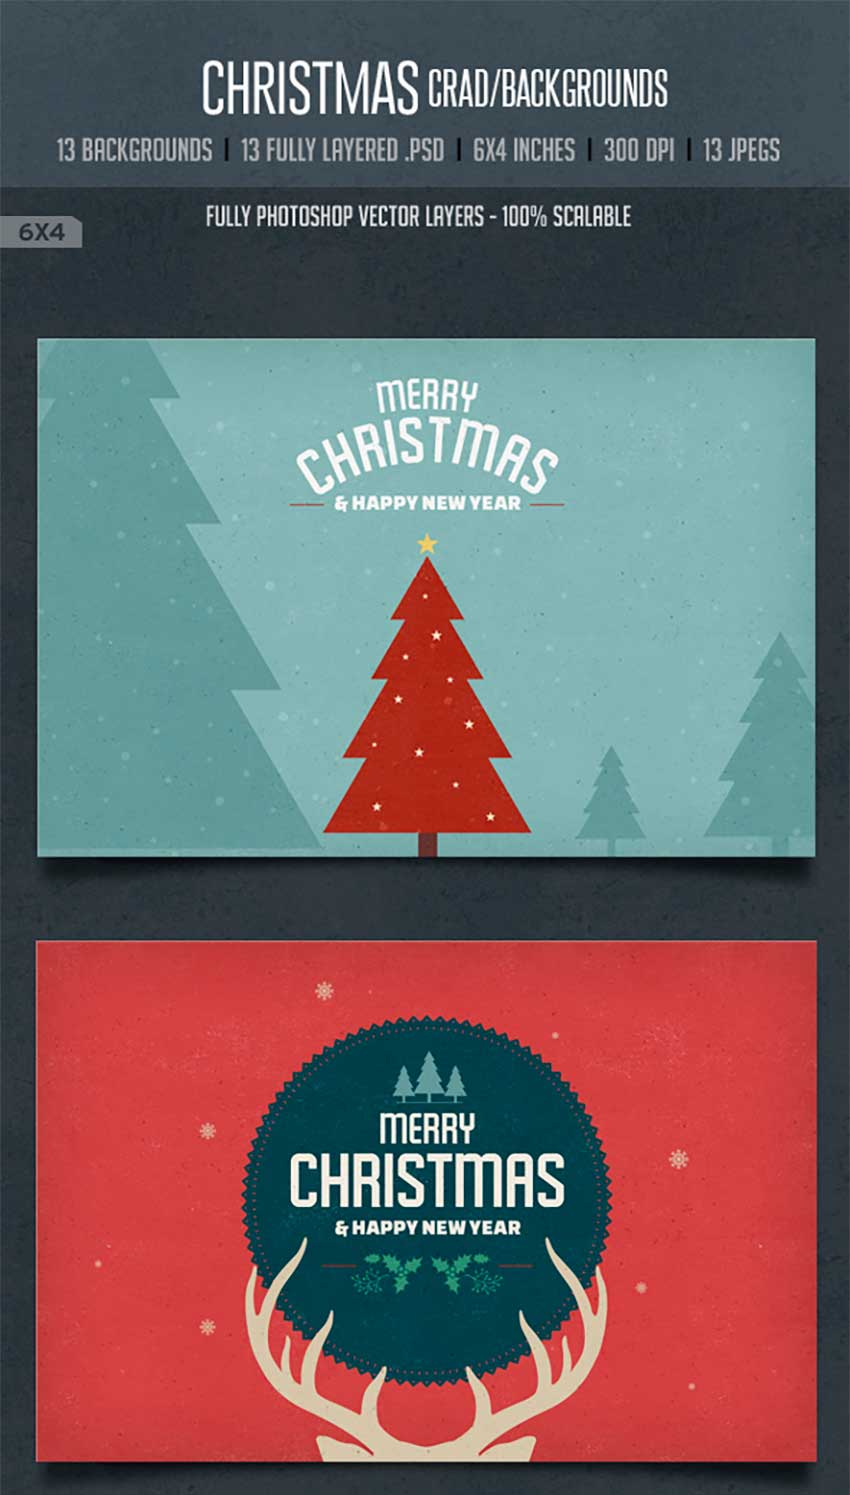 Vintage Christmas Card Backgrounds